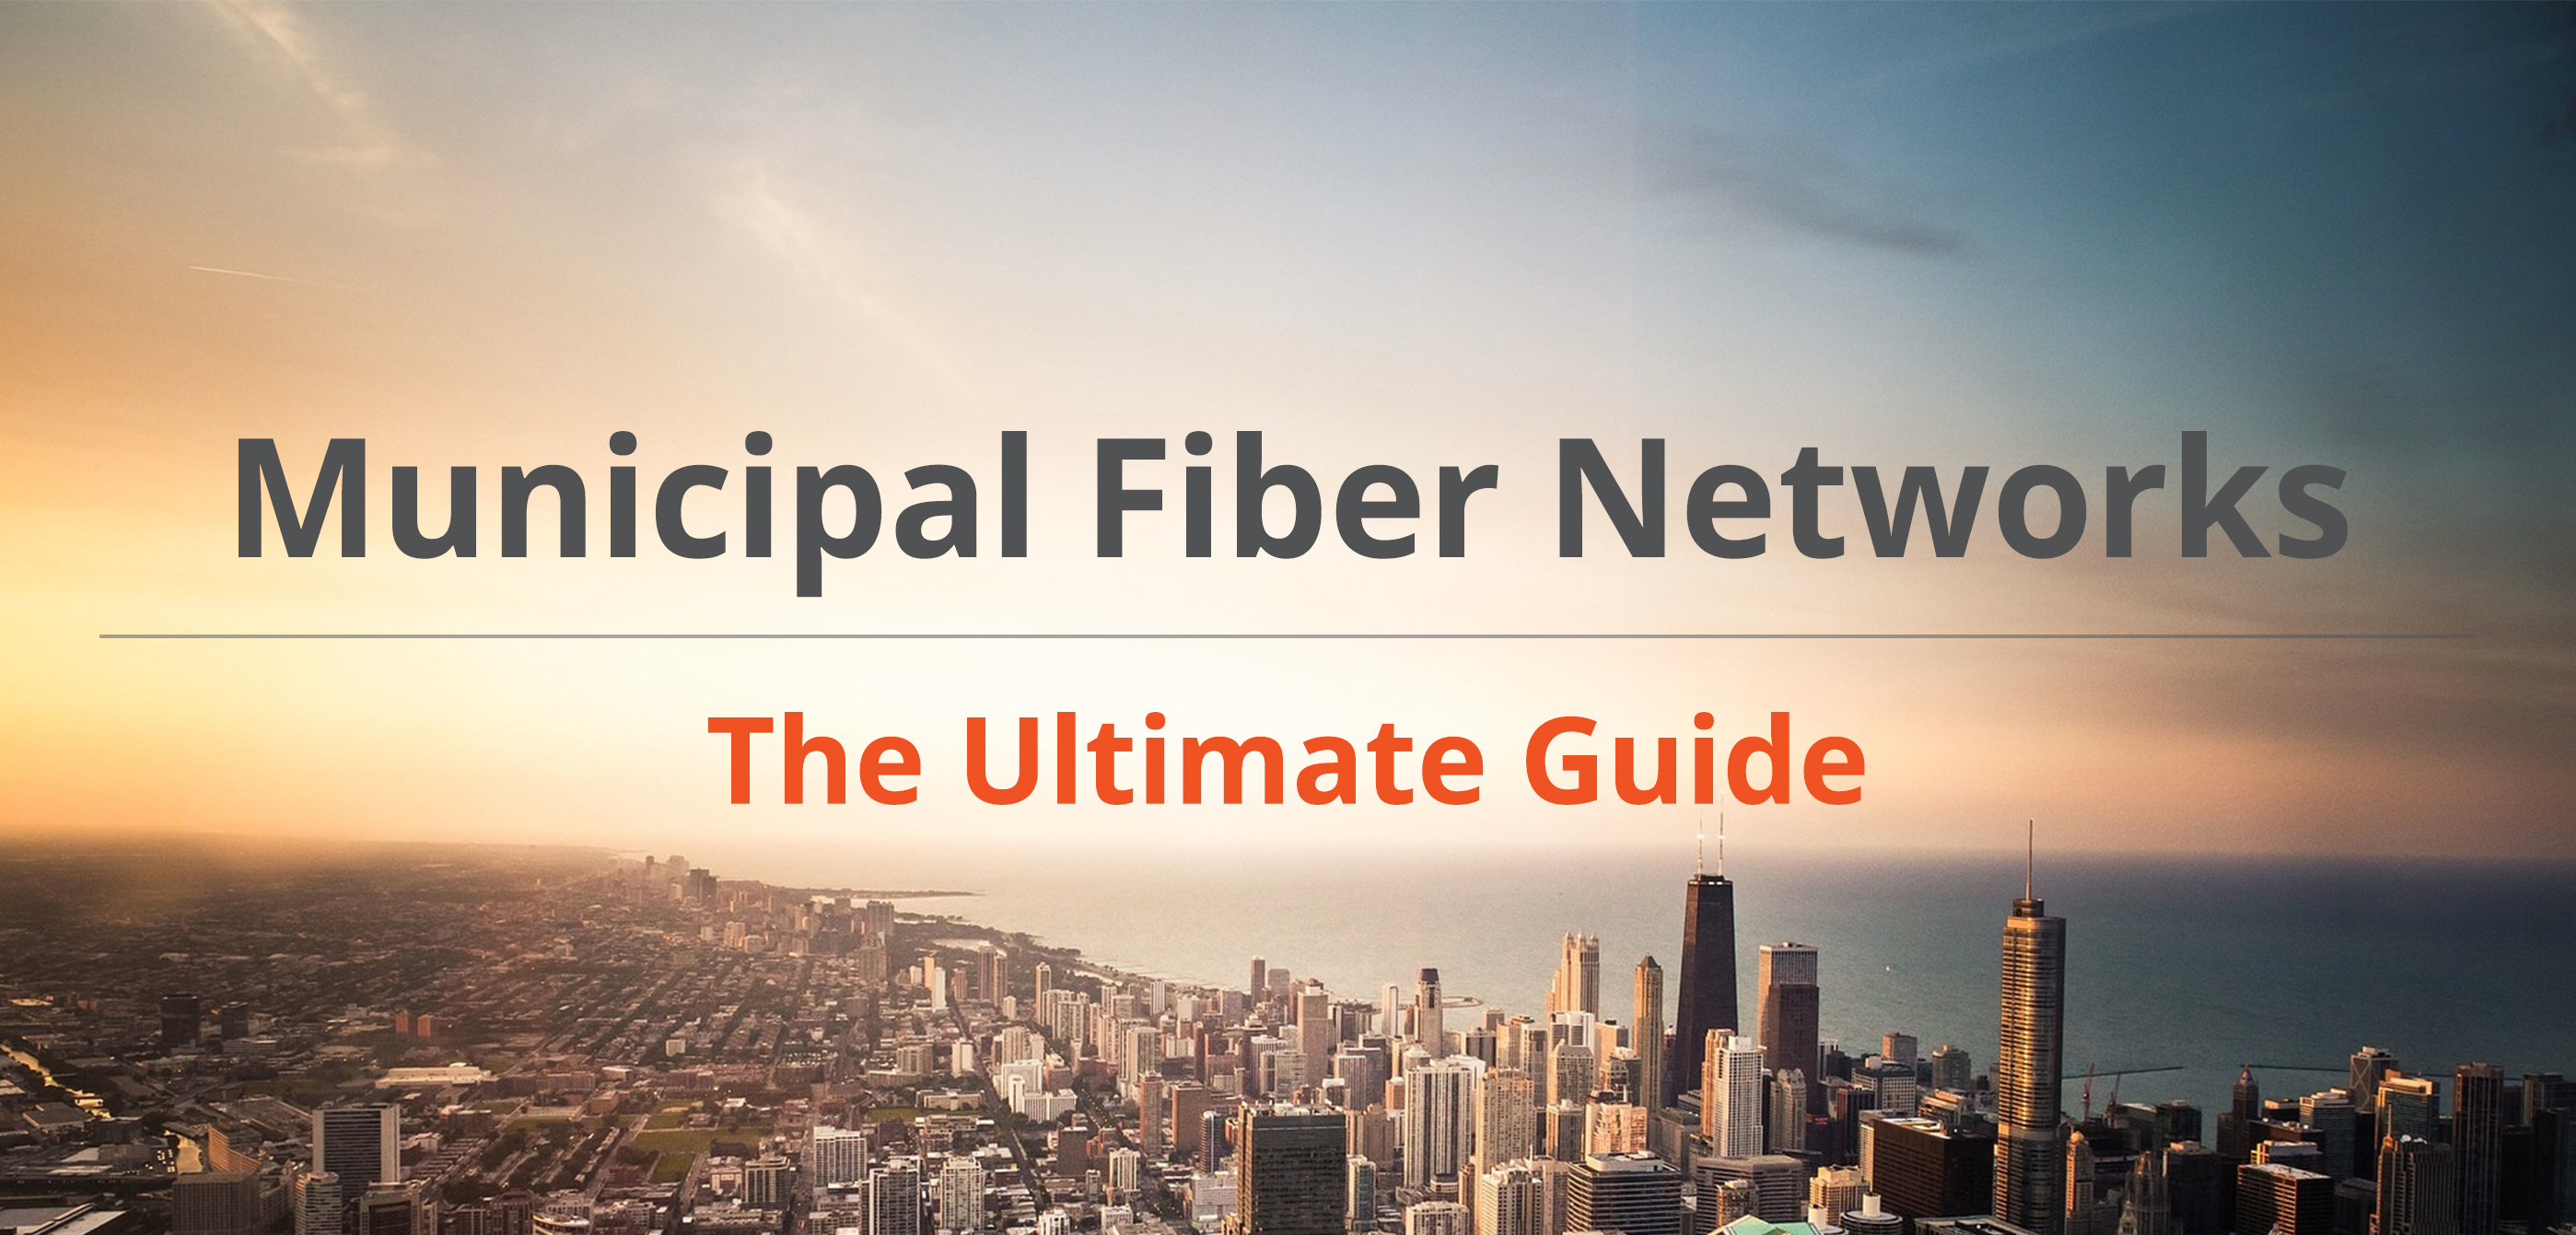 Resource Center - Municipal Fiber Network - Landing Page (featured image) (01.01)